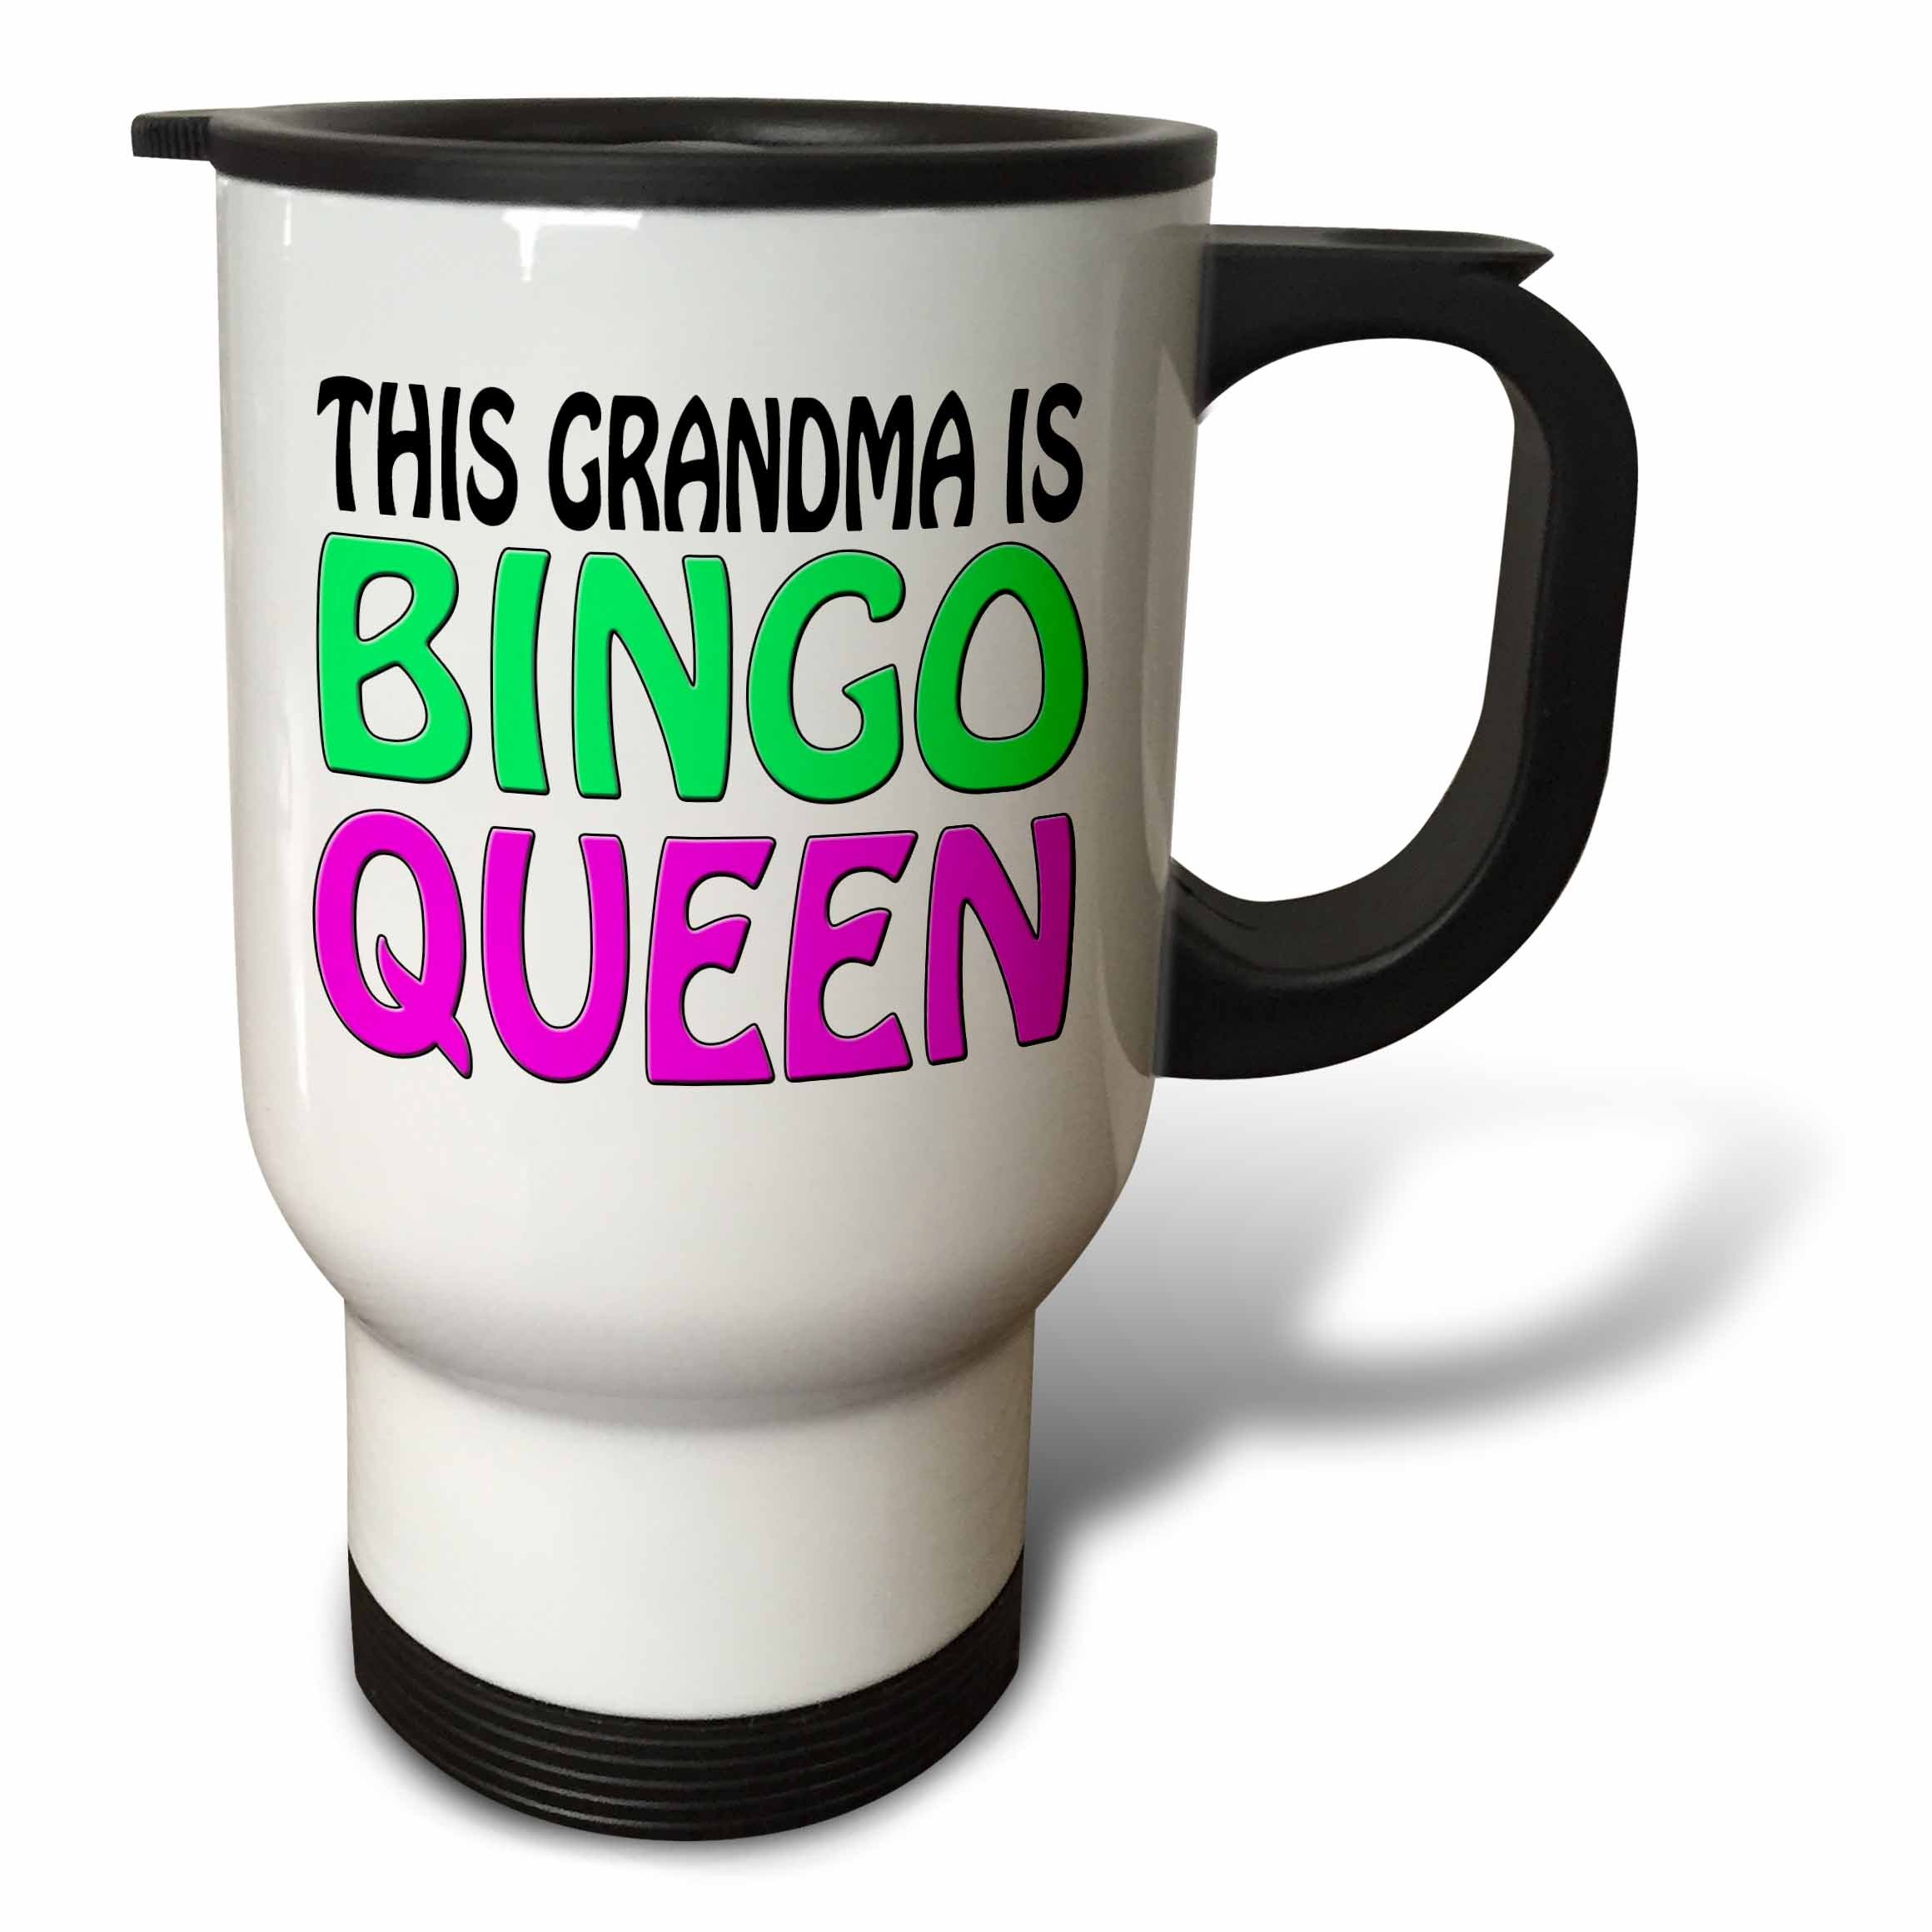 3dRose tm_149771_1 This Grandma Is Bingo Queen, Hot Pink, Lime Green, Travel Mug, 14-Ounce, Stainless Steel